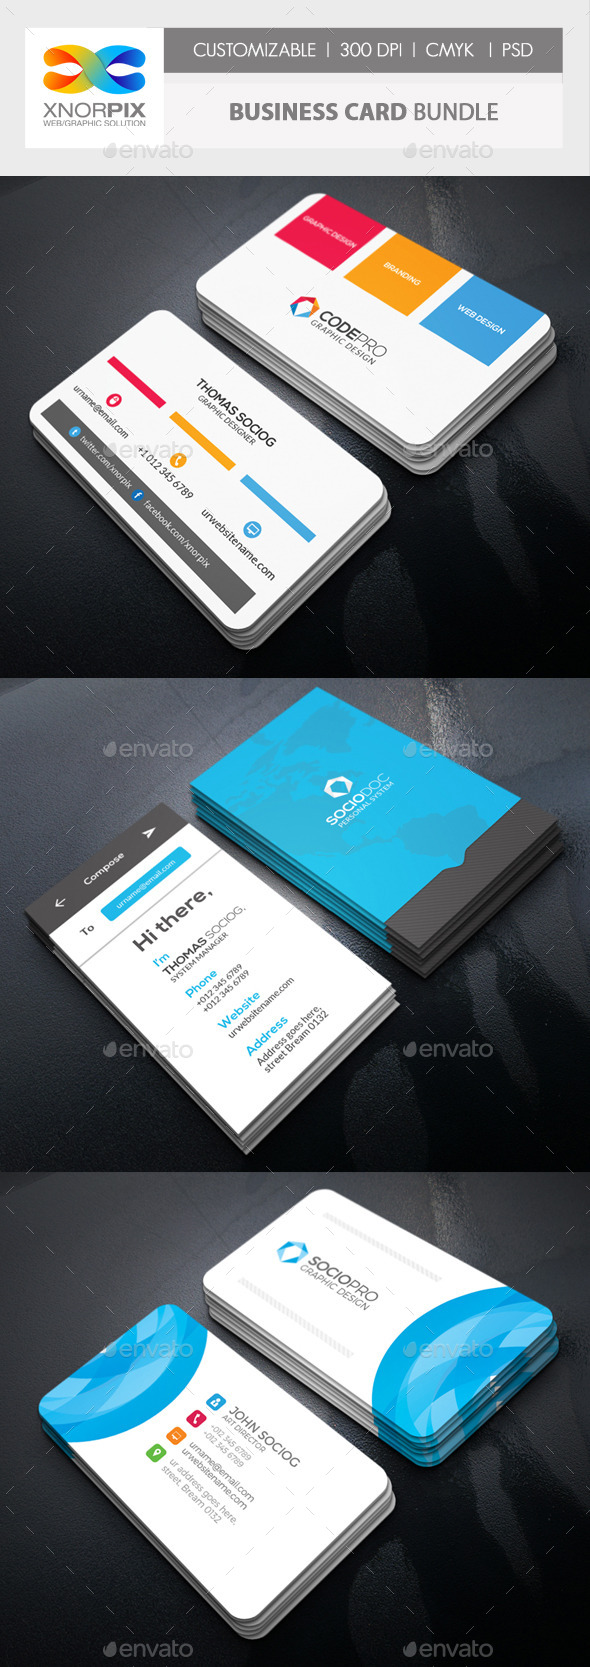 Business Card Bundle 3 in 1-Vol 61 - Corporate Business Cards